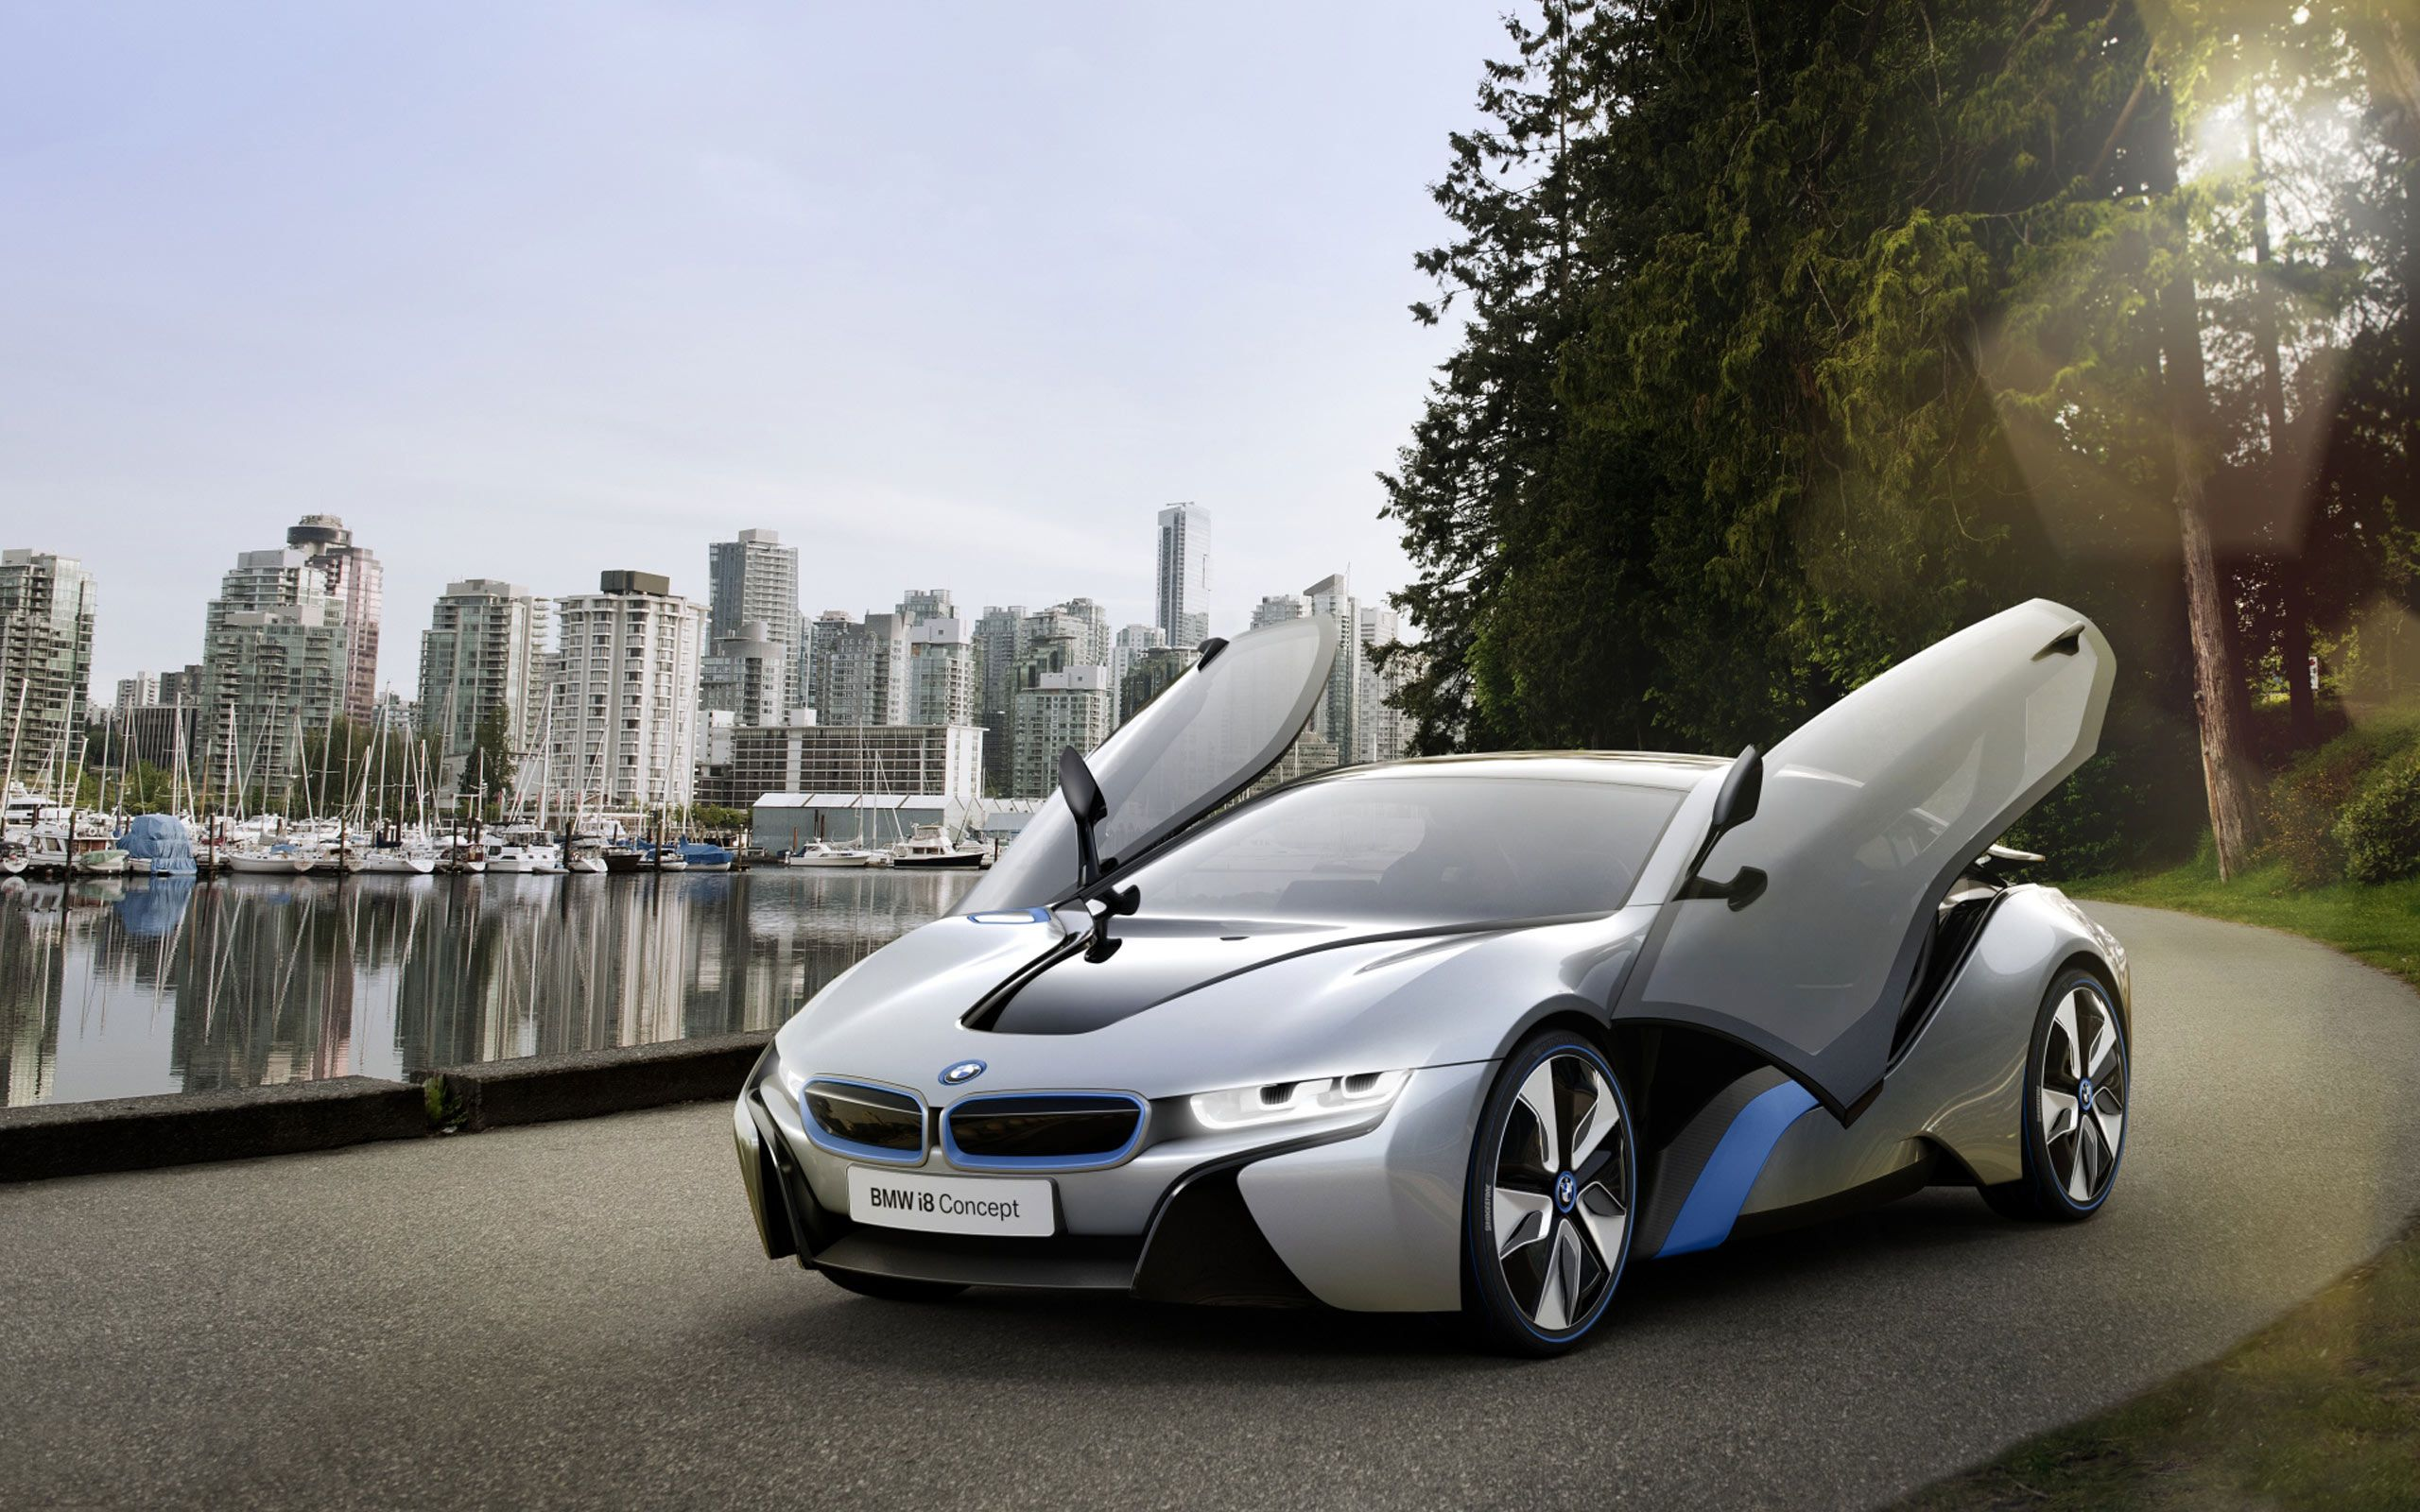 bmw new car releaseBMW USA  i8 Hybrid Electric Car Release Date MPG KPG Top Speed